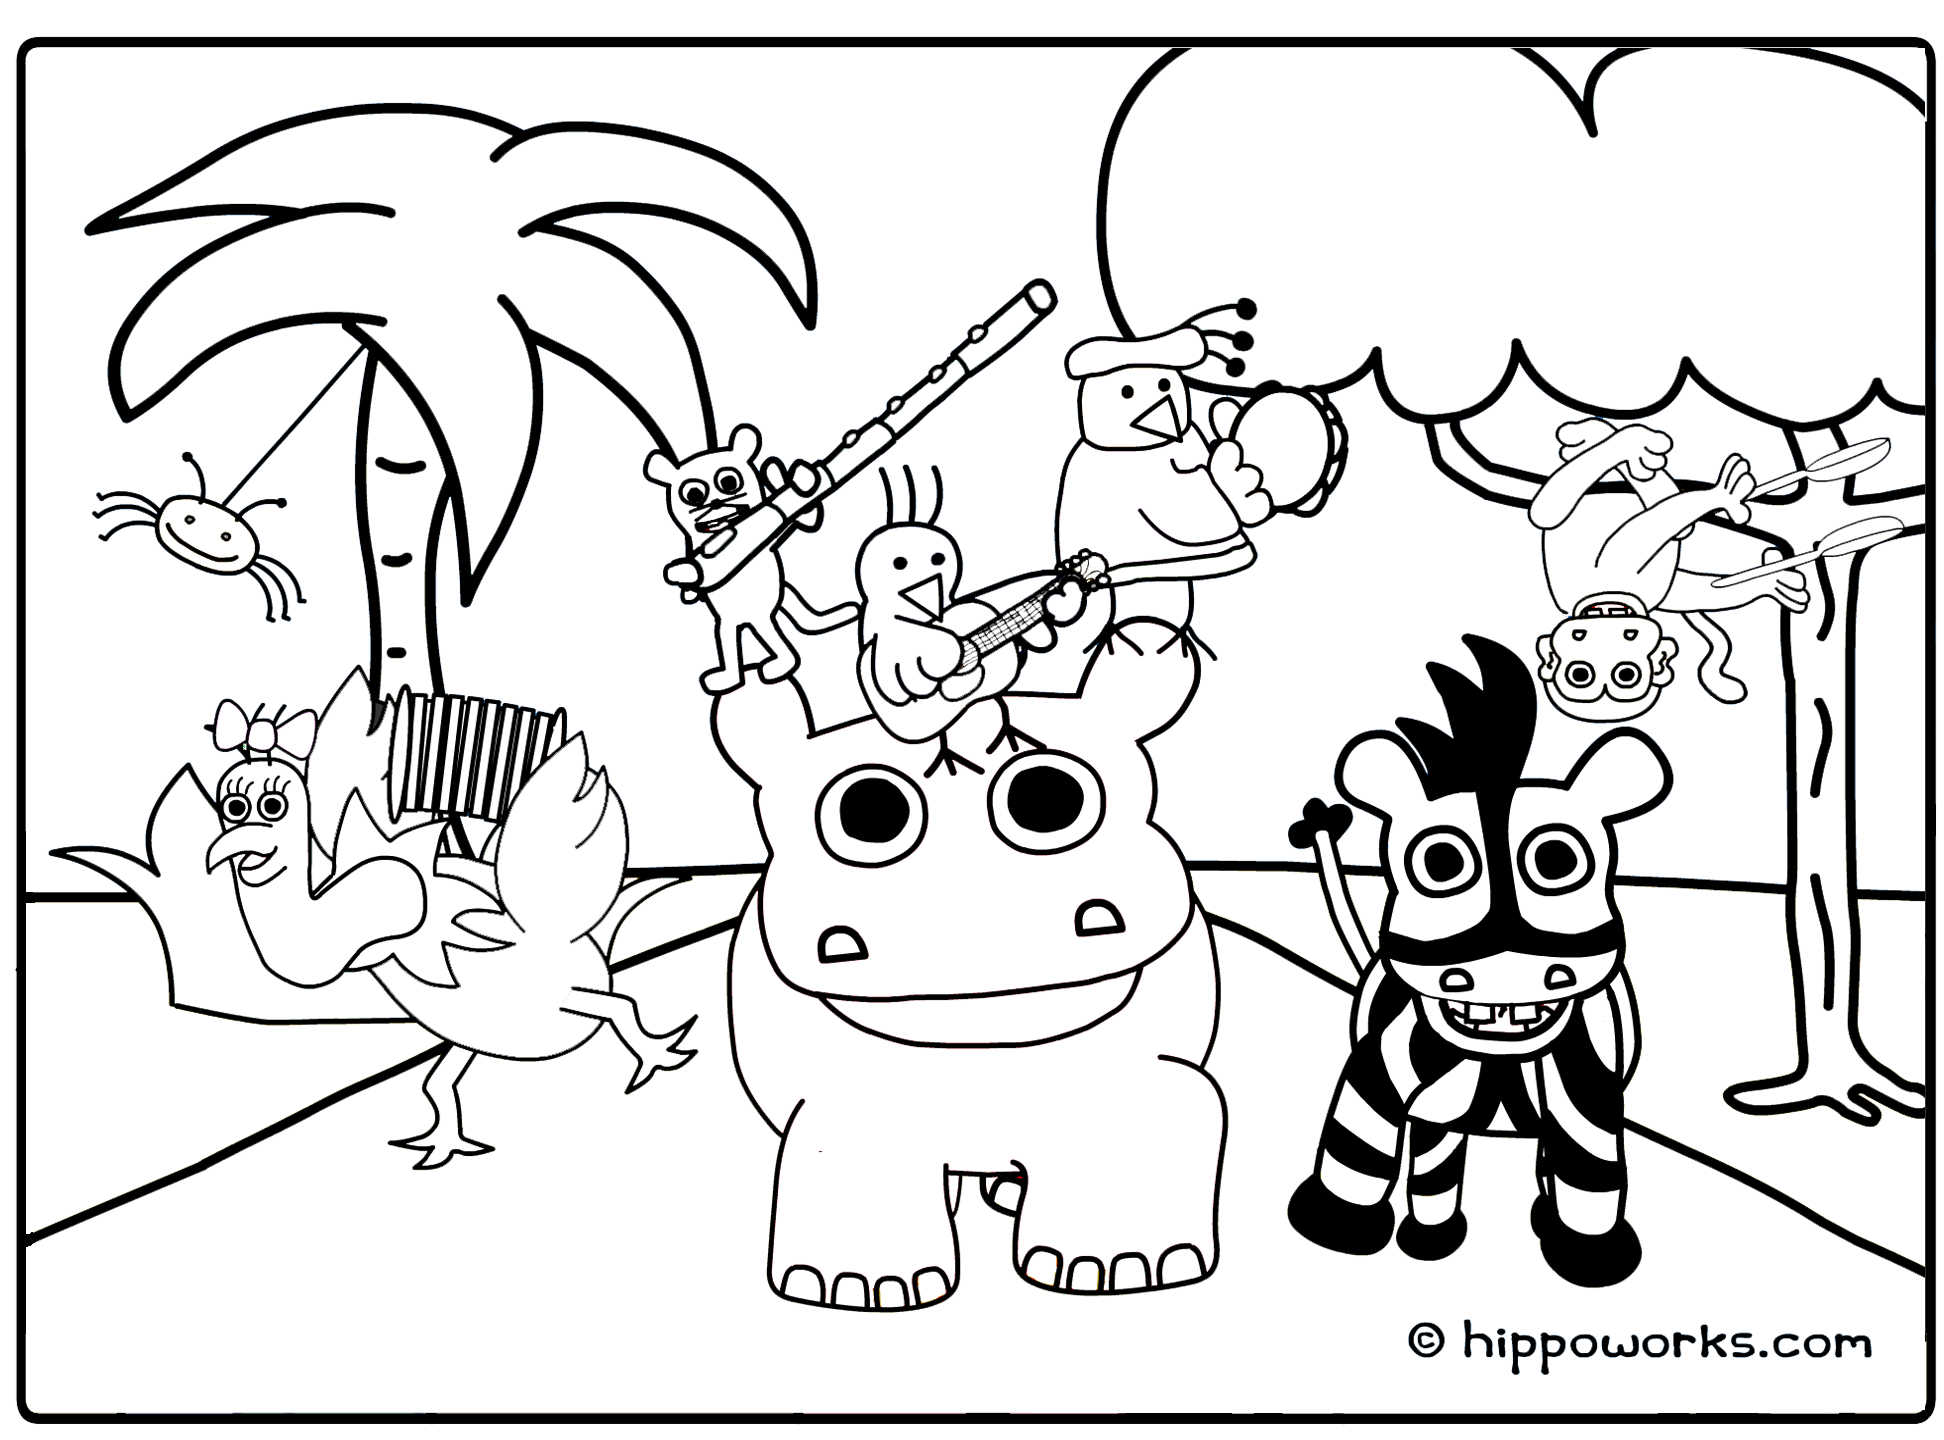 Coloring Pages Jungle Animals : Jungle animal coloring pages to download and print for free